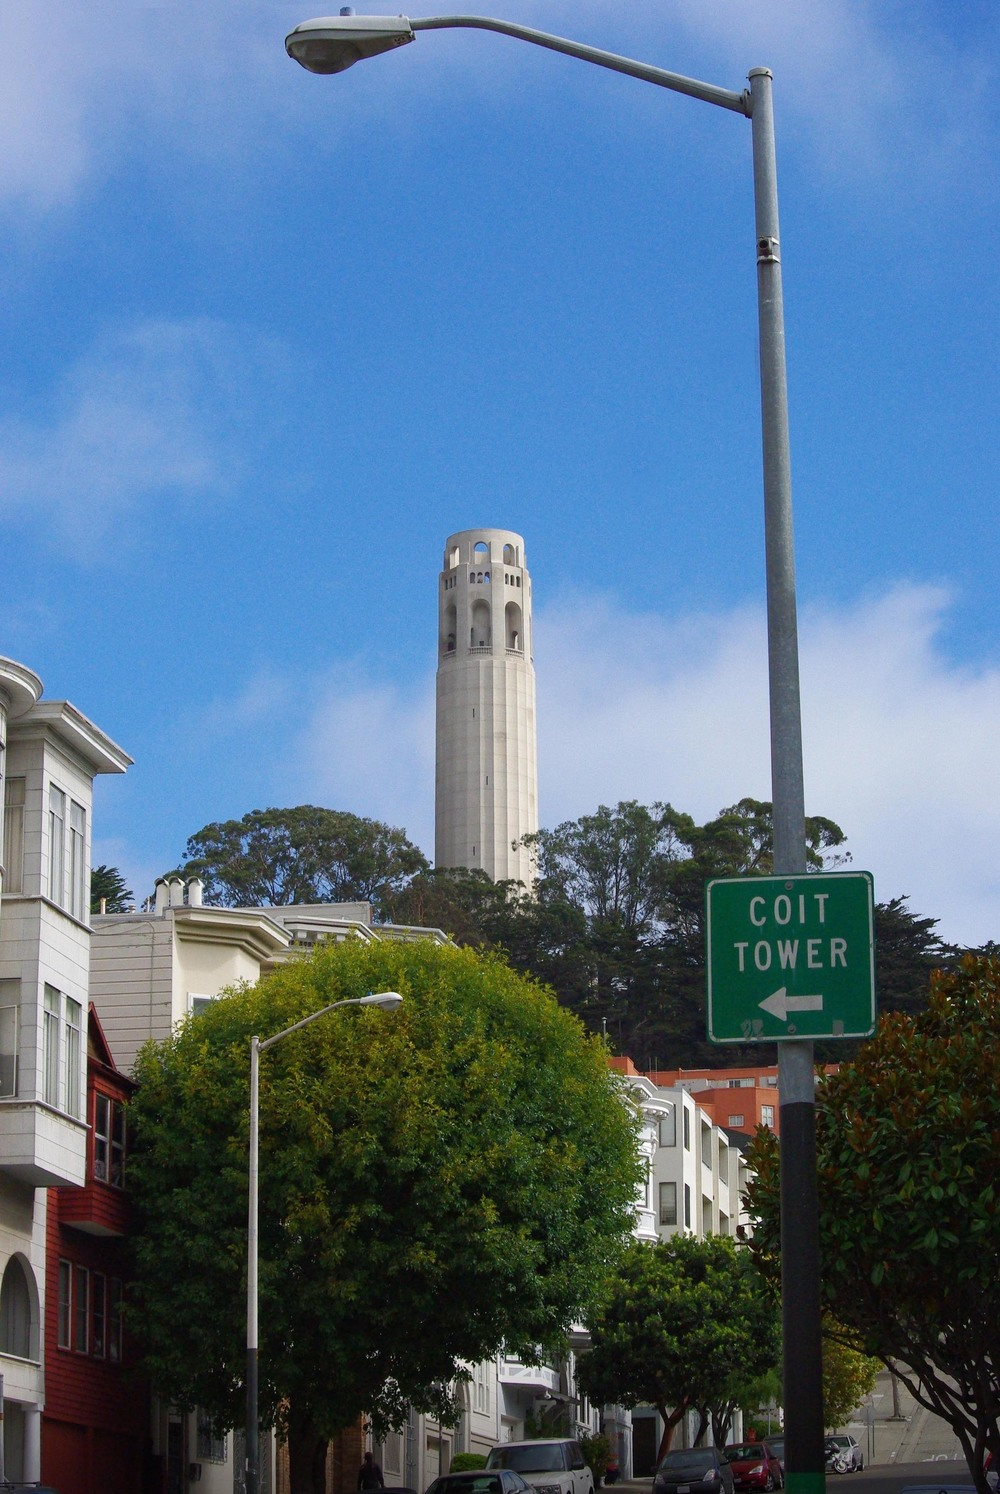 6.	Climb Coit Tower